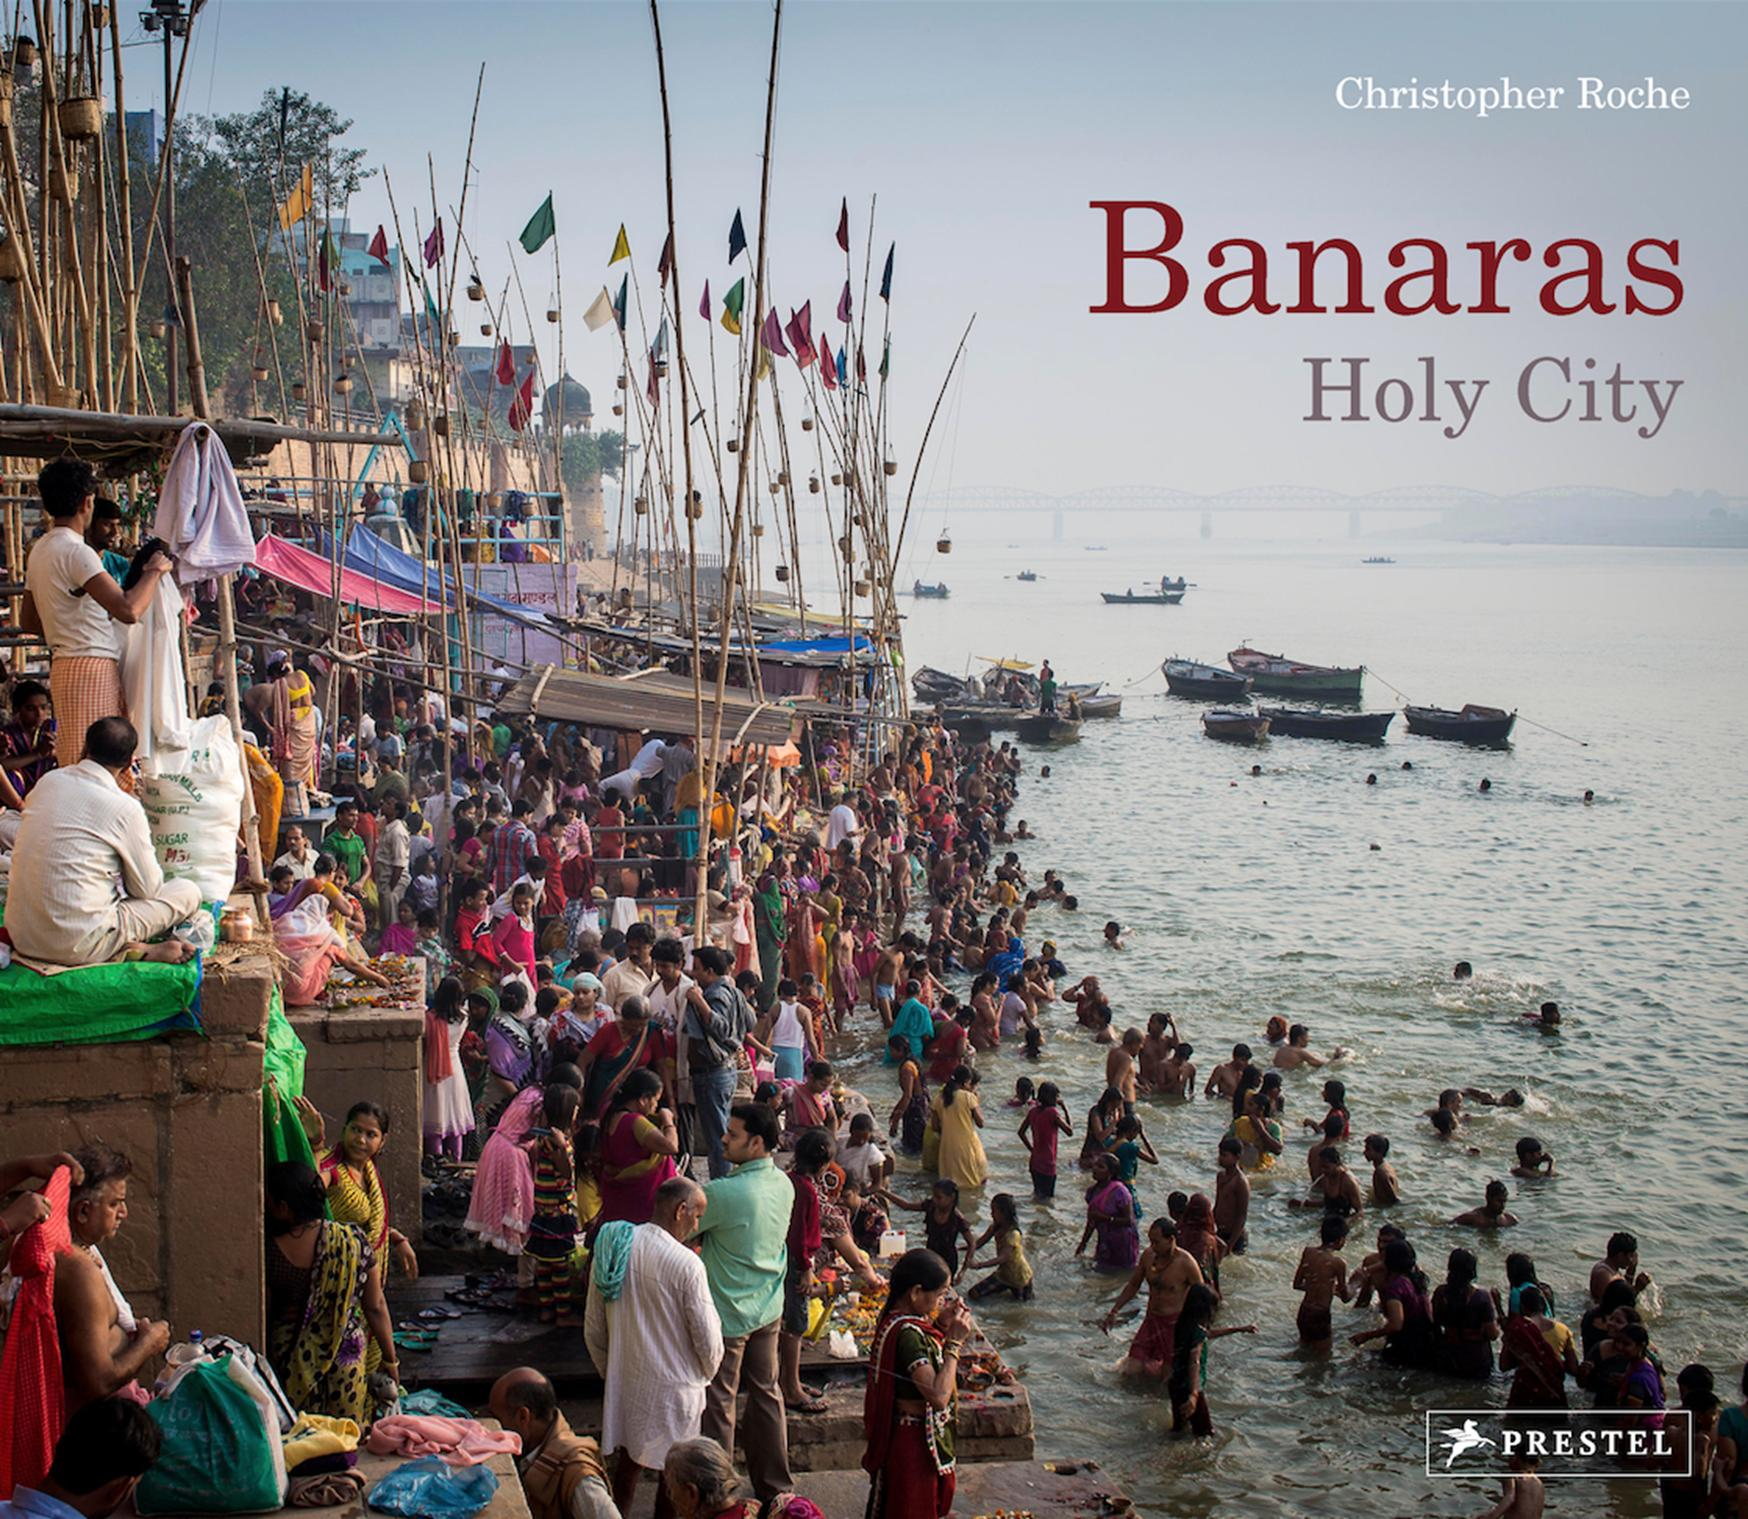 Chris_roche_banaras_holy_city